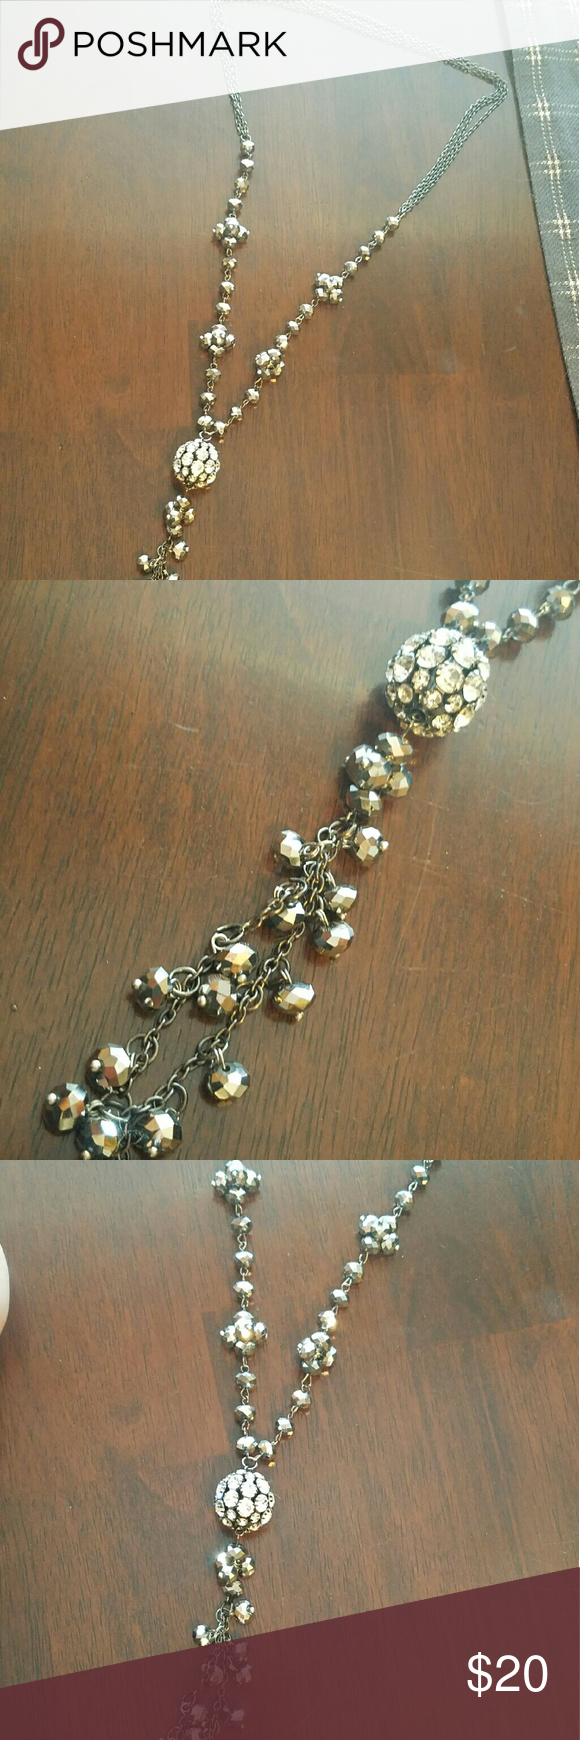 Long blingy necklace like new#makereasonableoffer Holiday Style Jewelry Necklaces